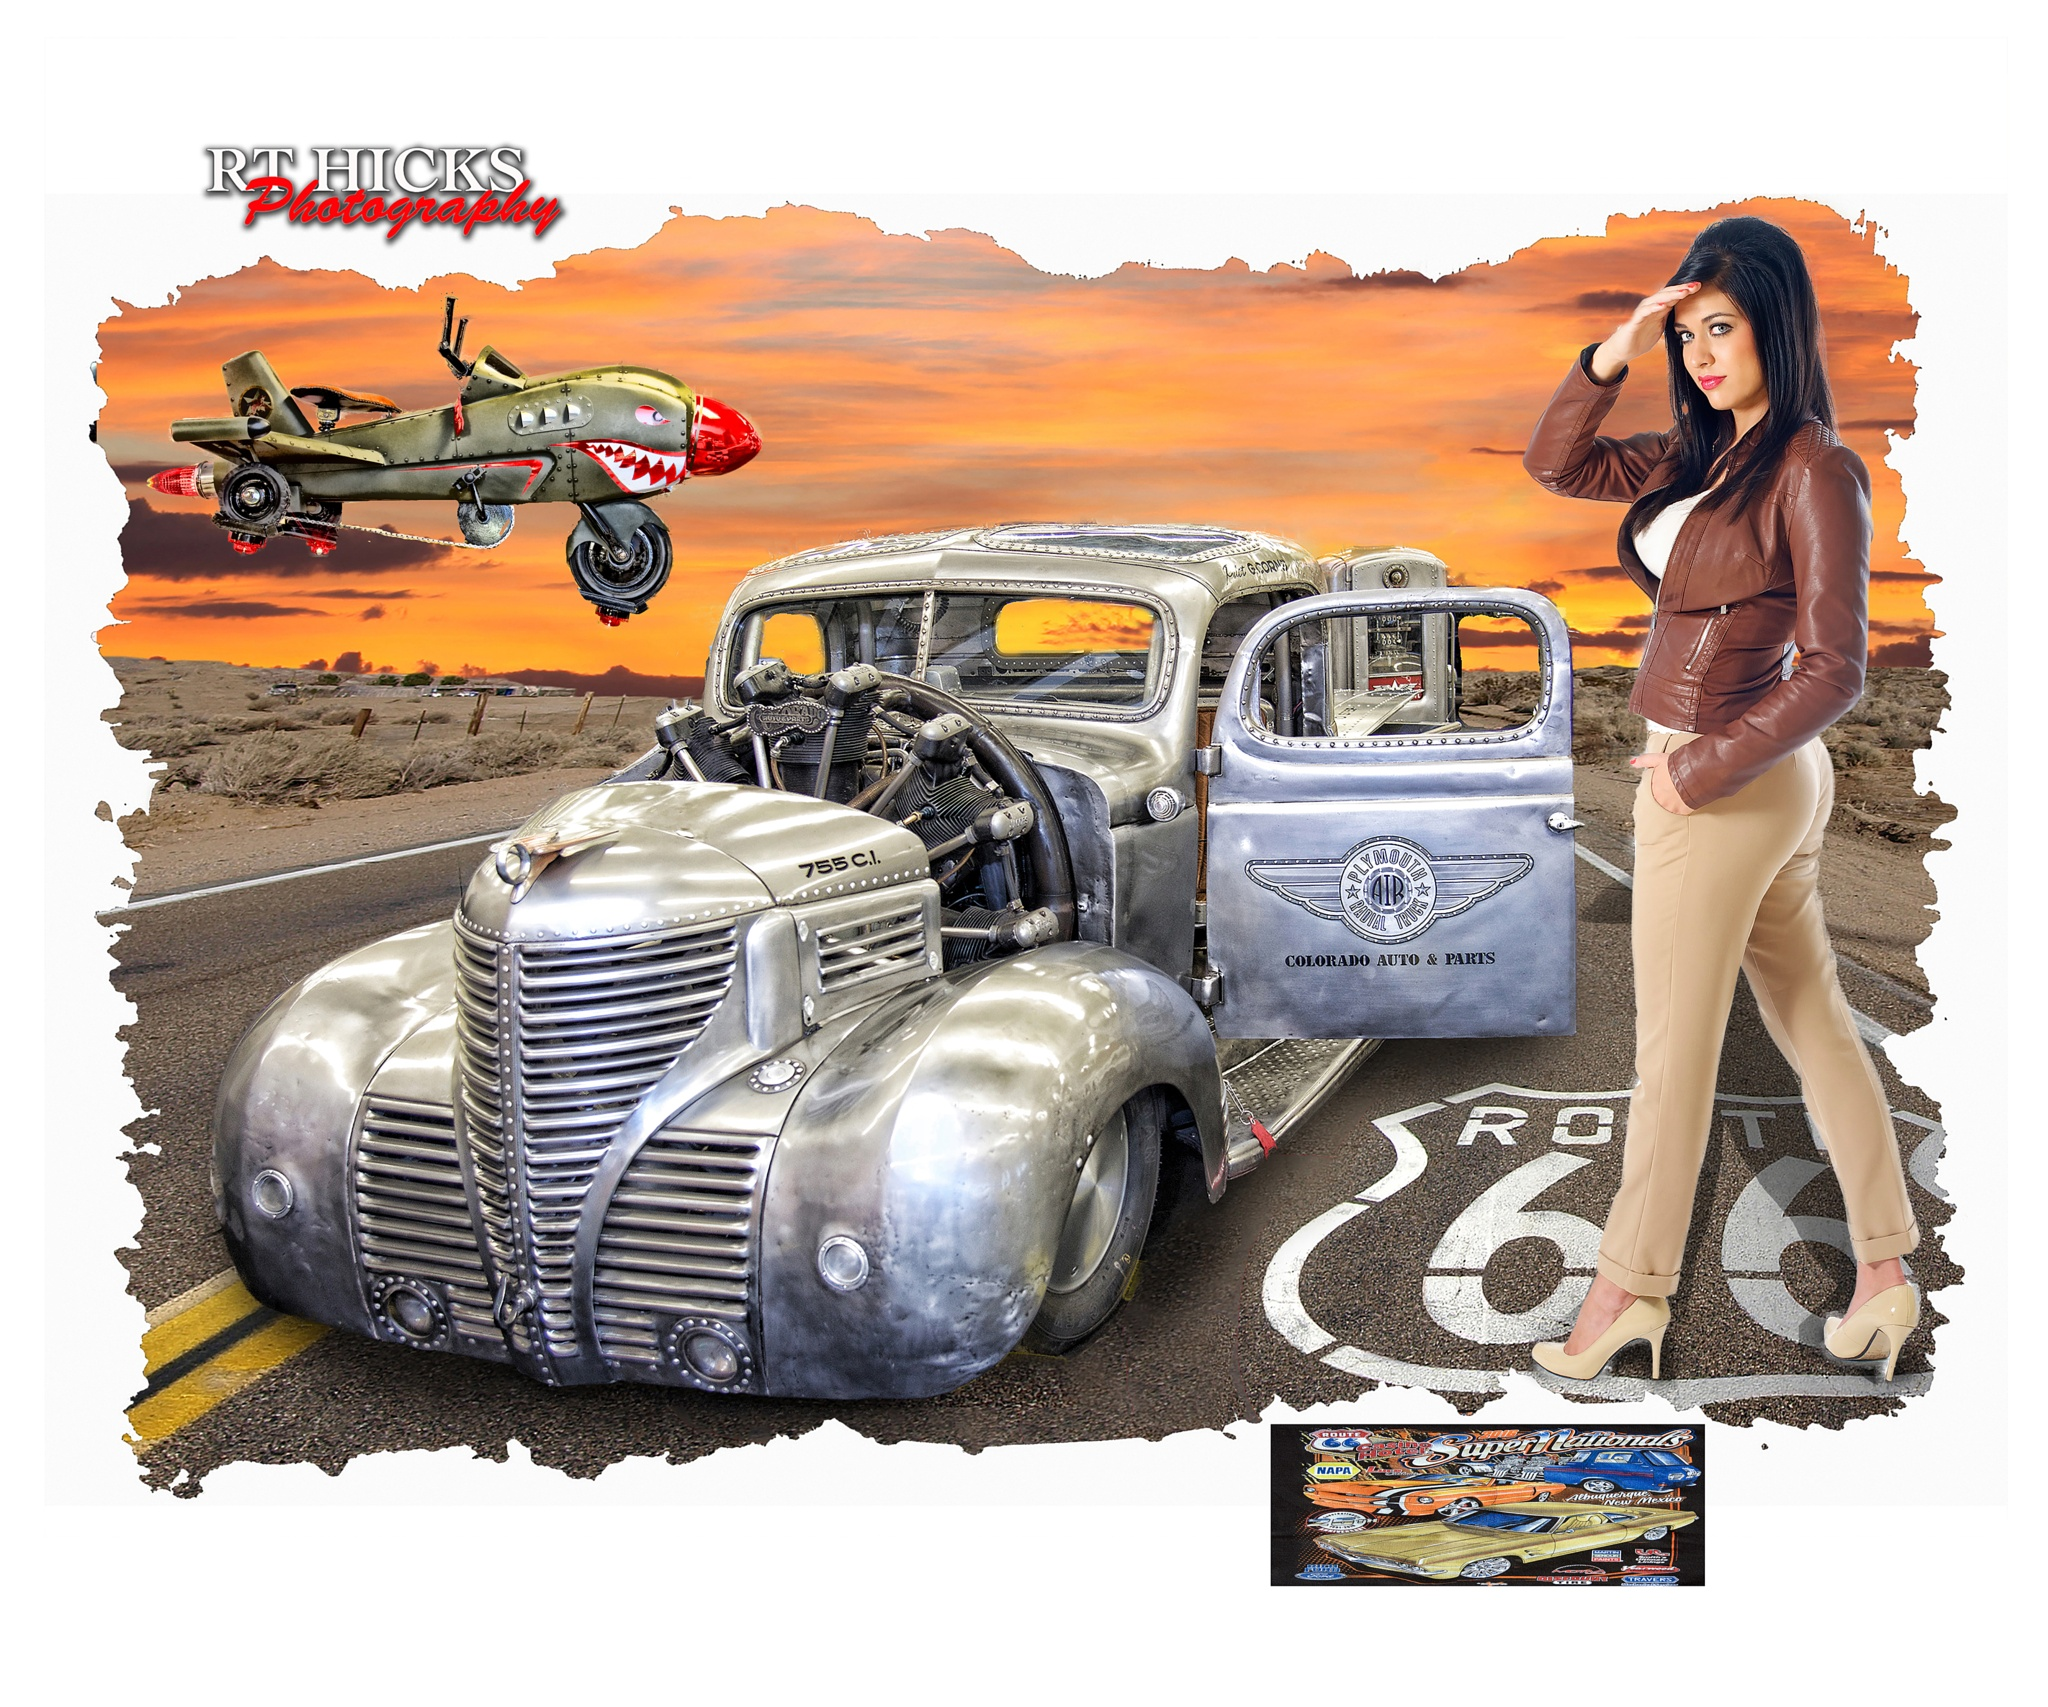 Bommer Jacket with Rat Rod 1941 Plymouth with a airplane engine by RT Hicks